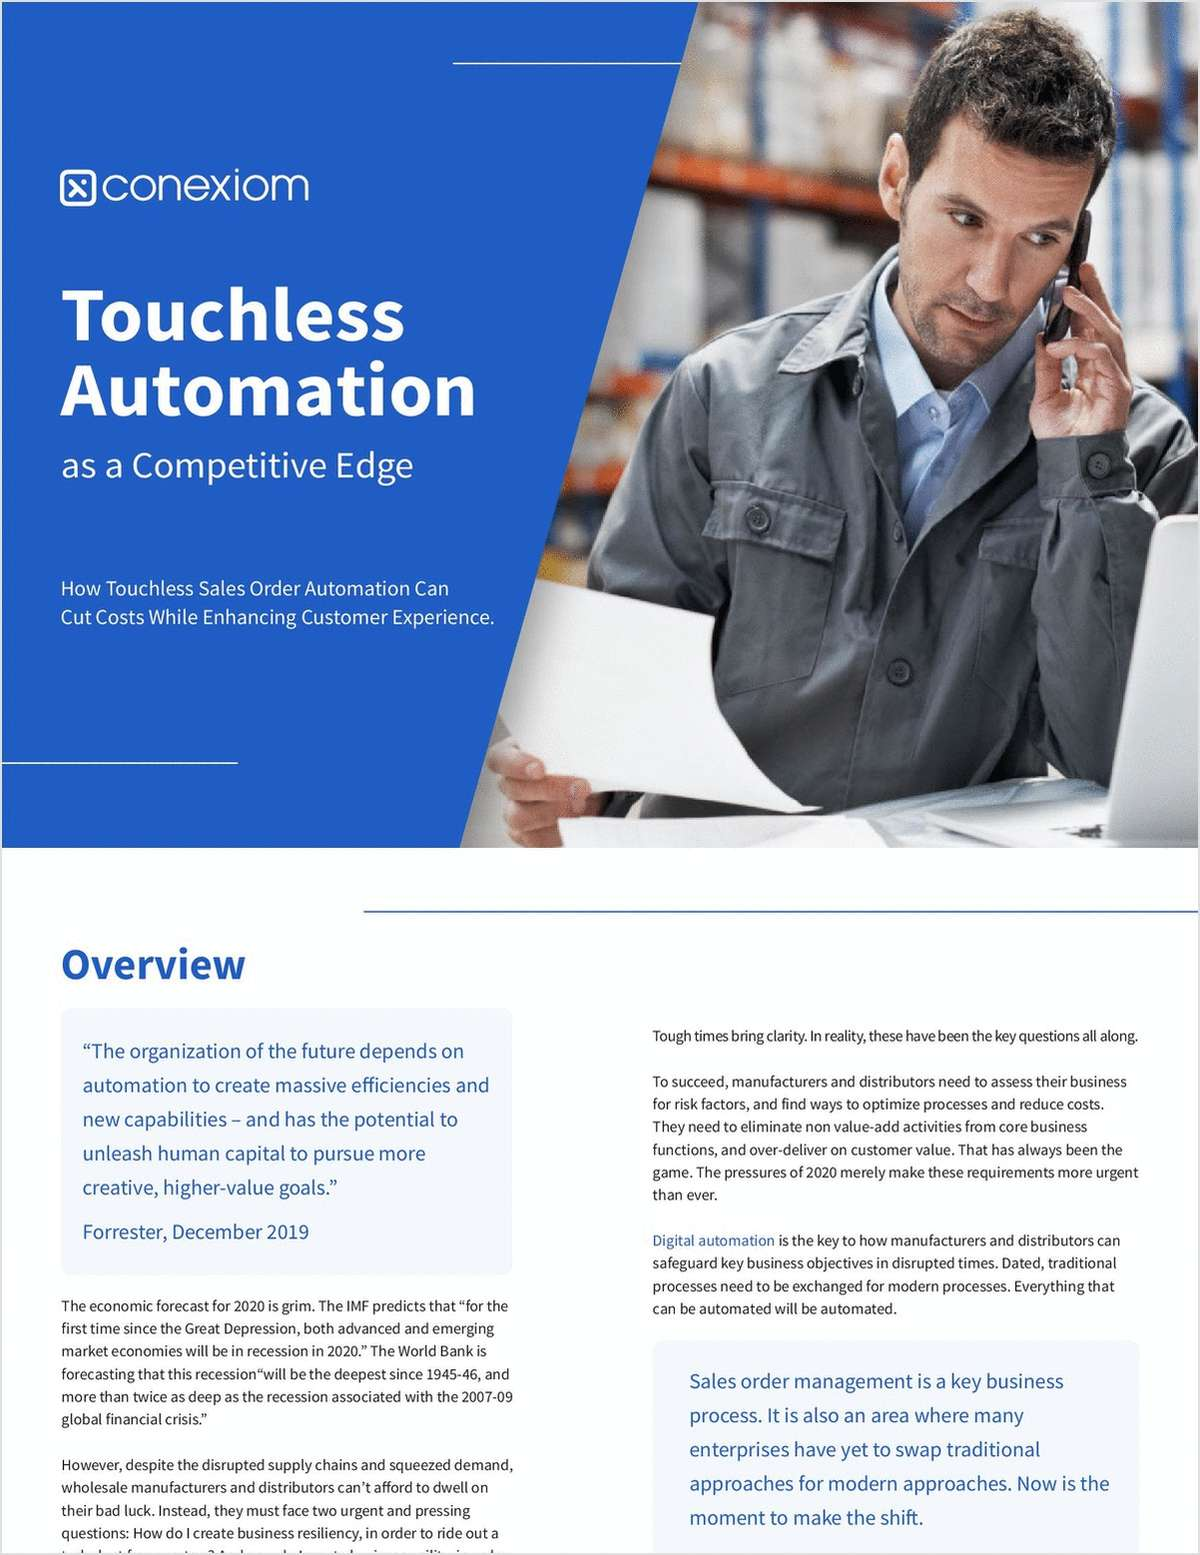 Touchless Automation as a Competitive Edge